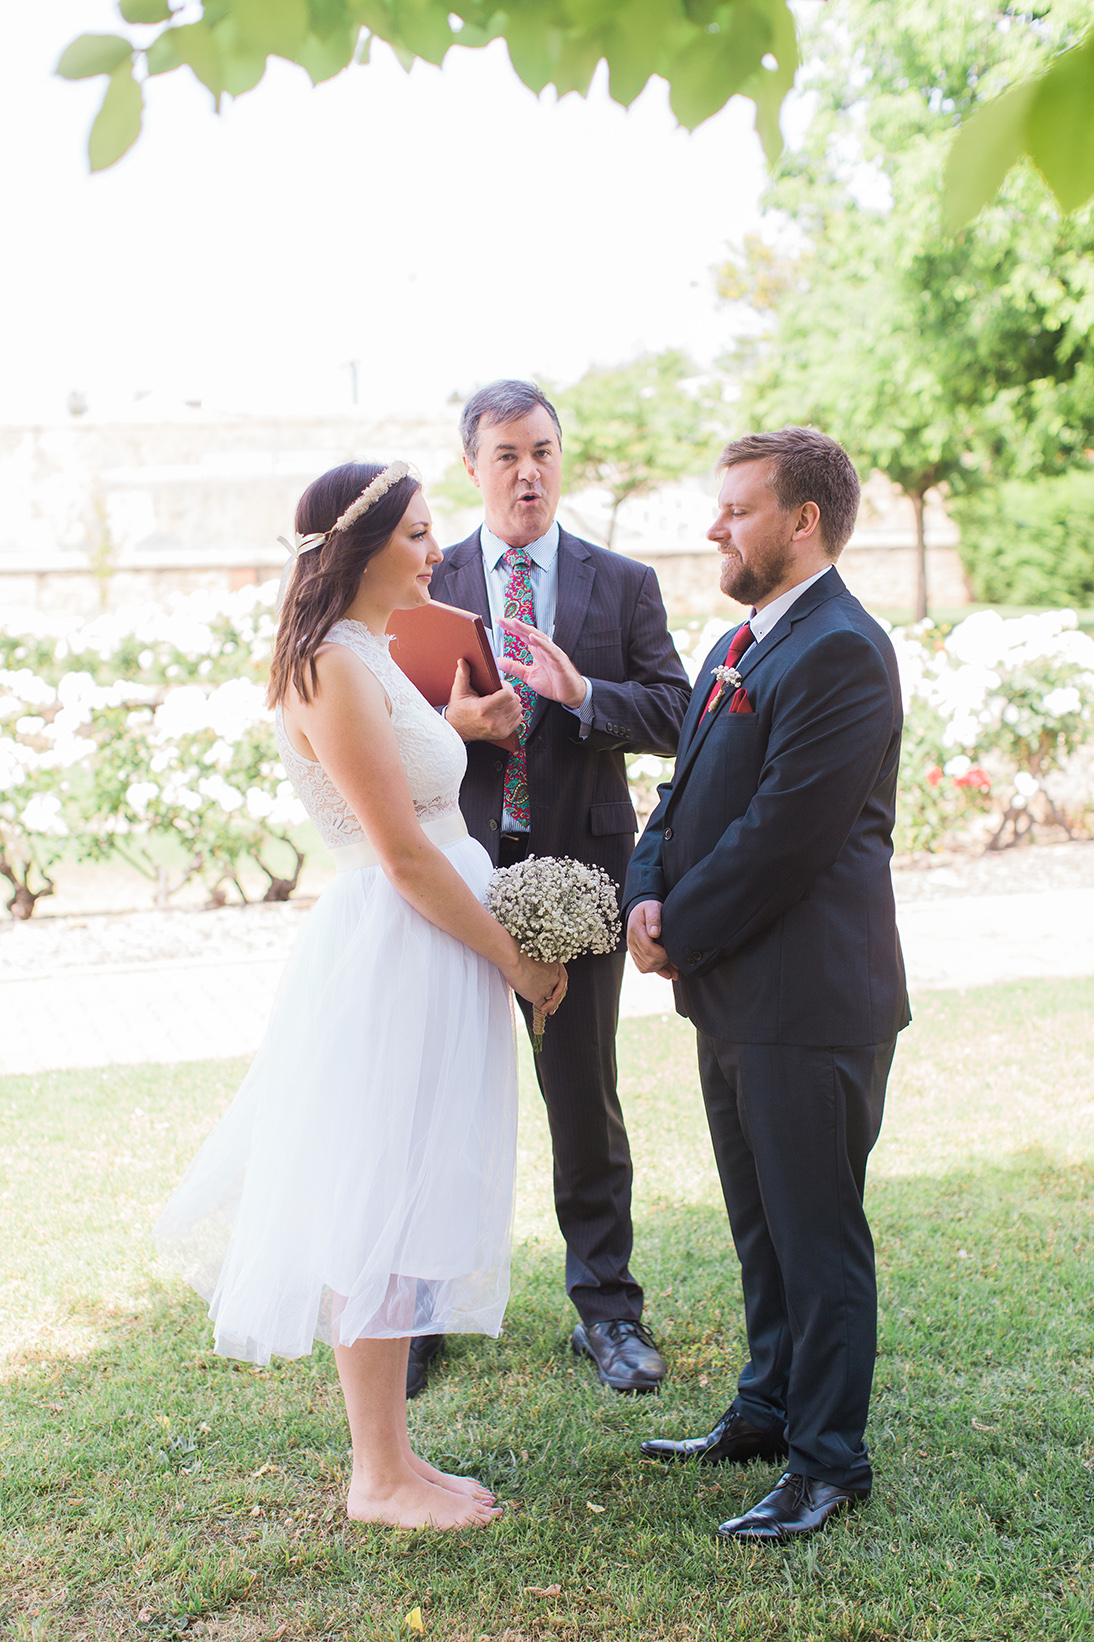 Beautiful Little Elopement 006.jpg